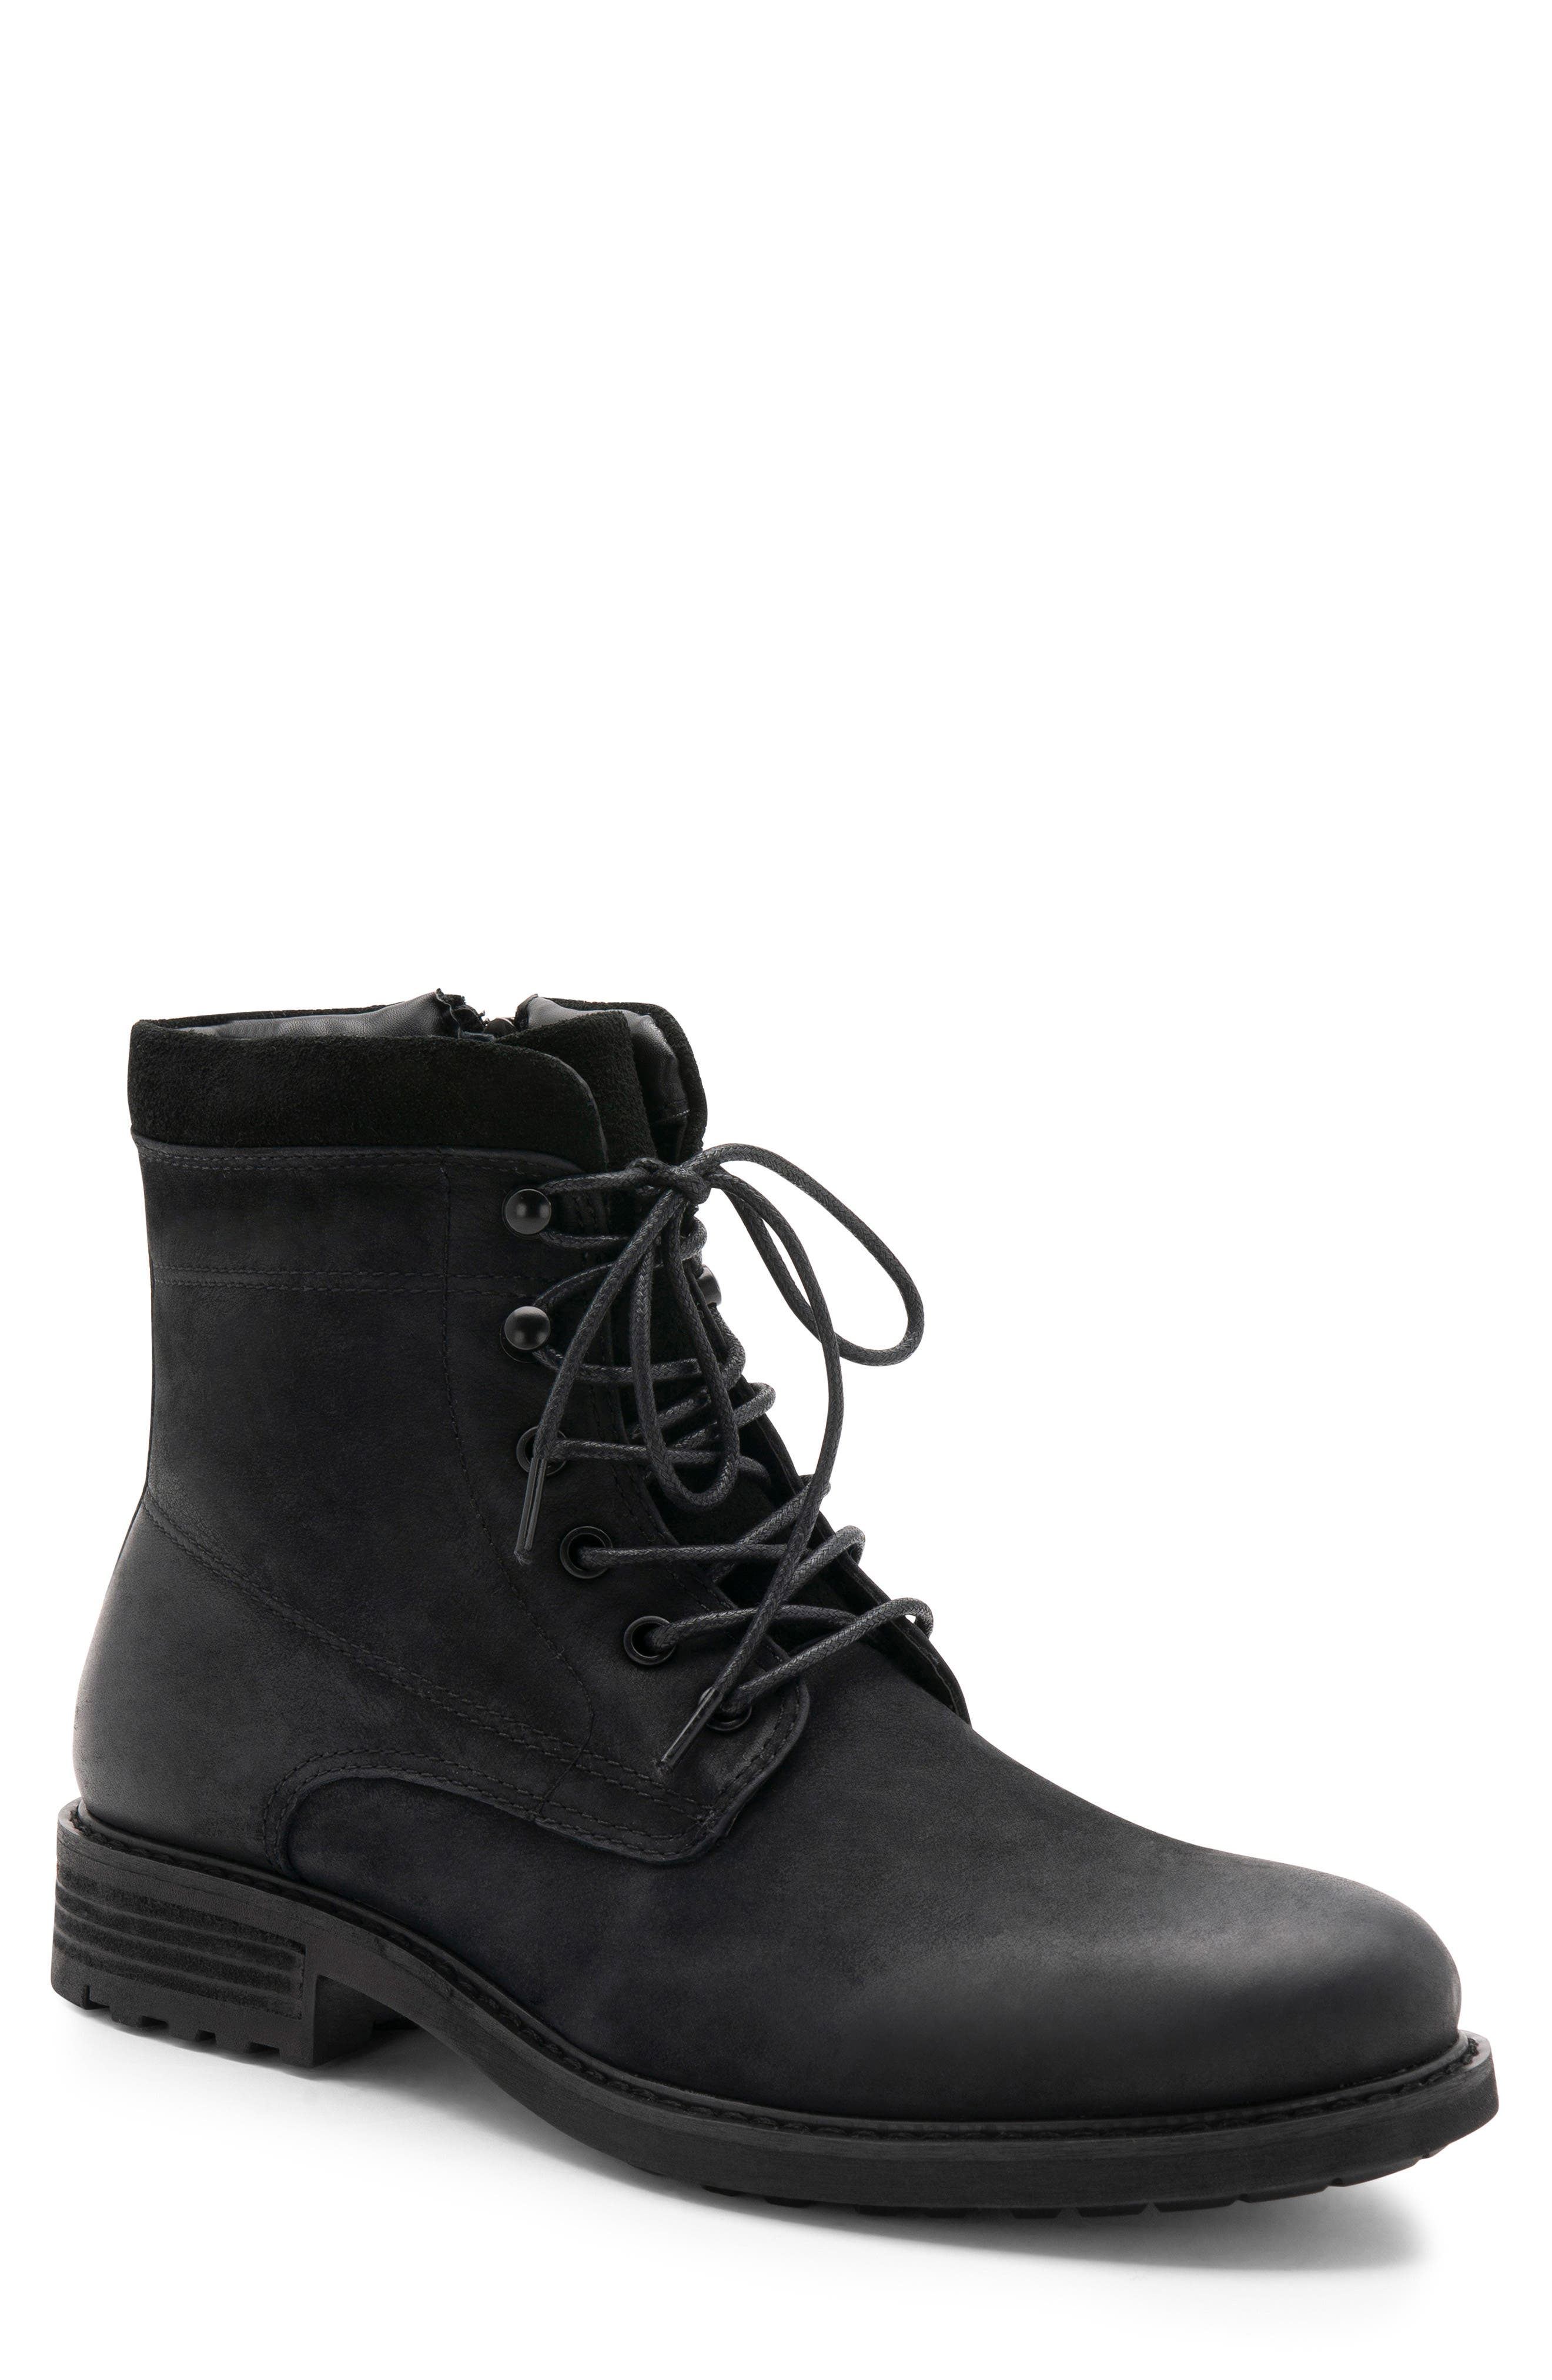 BLONDO, Patton Waterproof Plain Toe Boot, Main thumbnail 1, color, BLACK NUBUCK